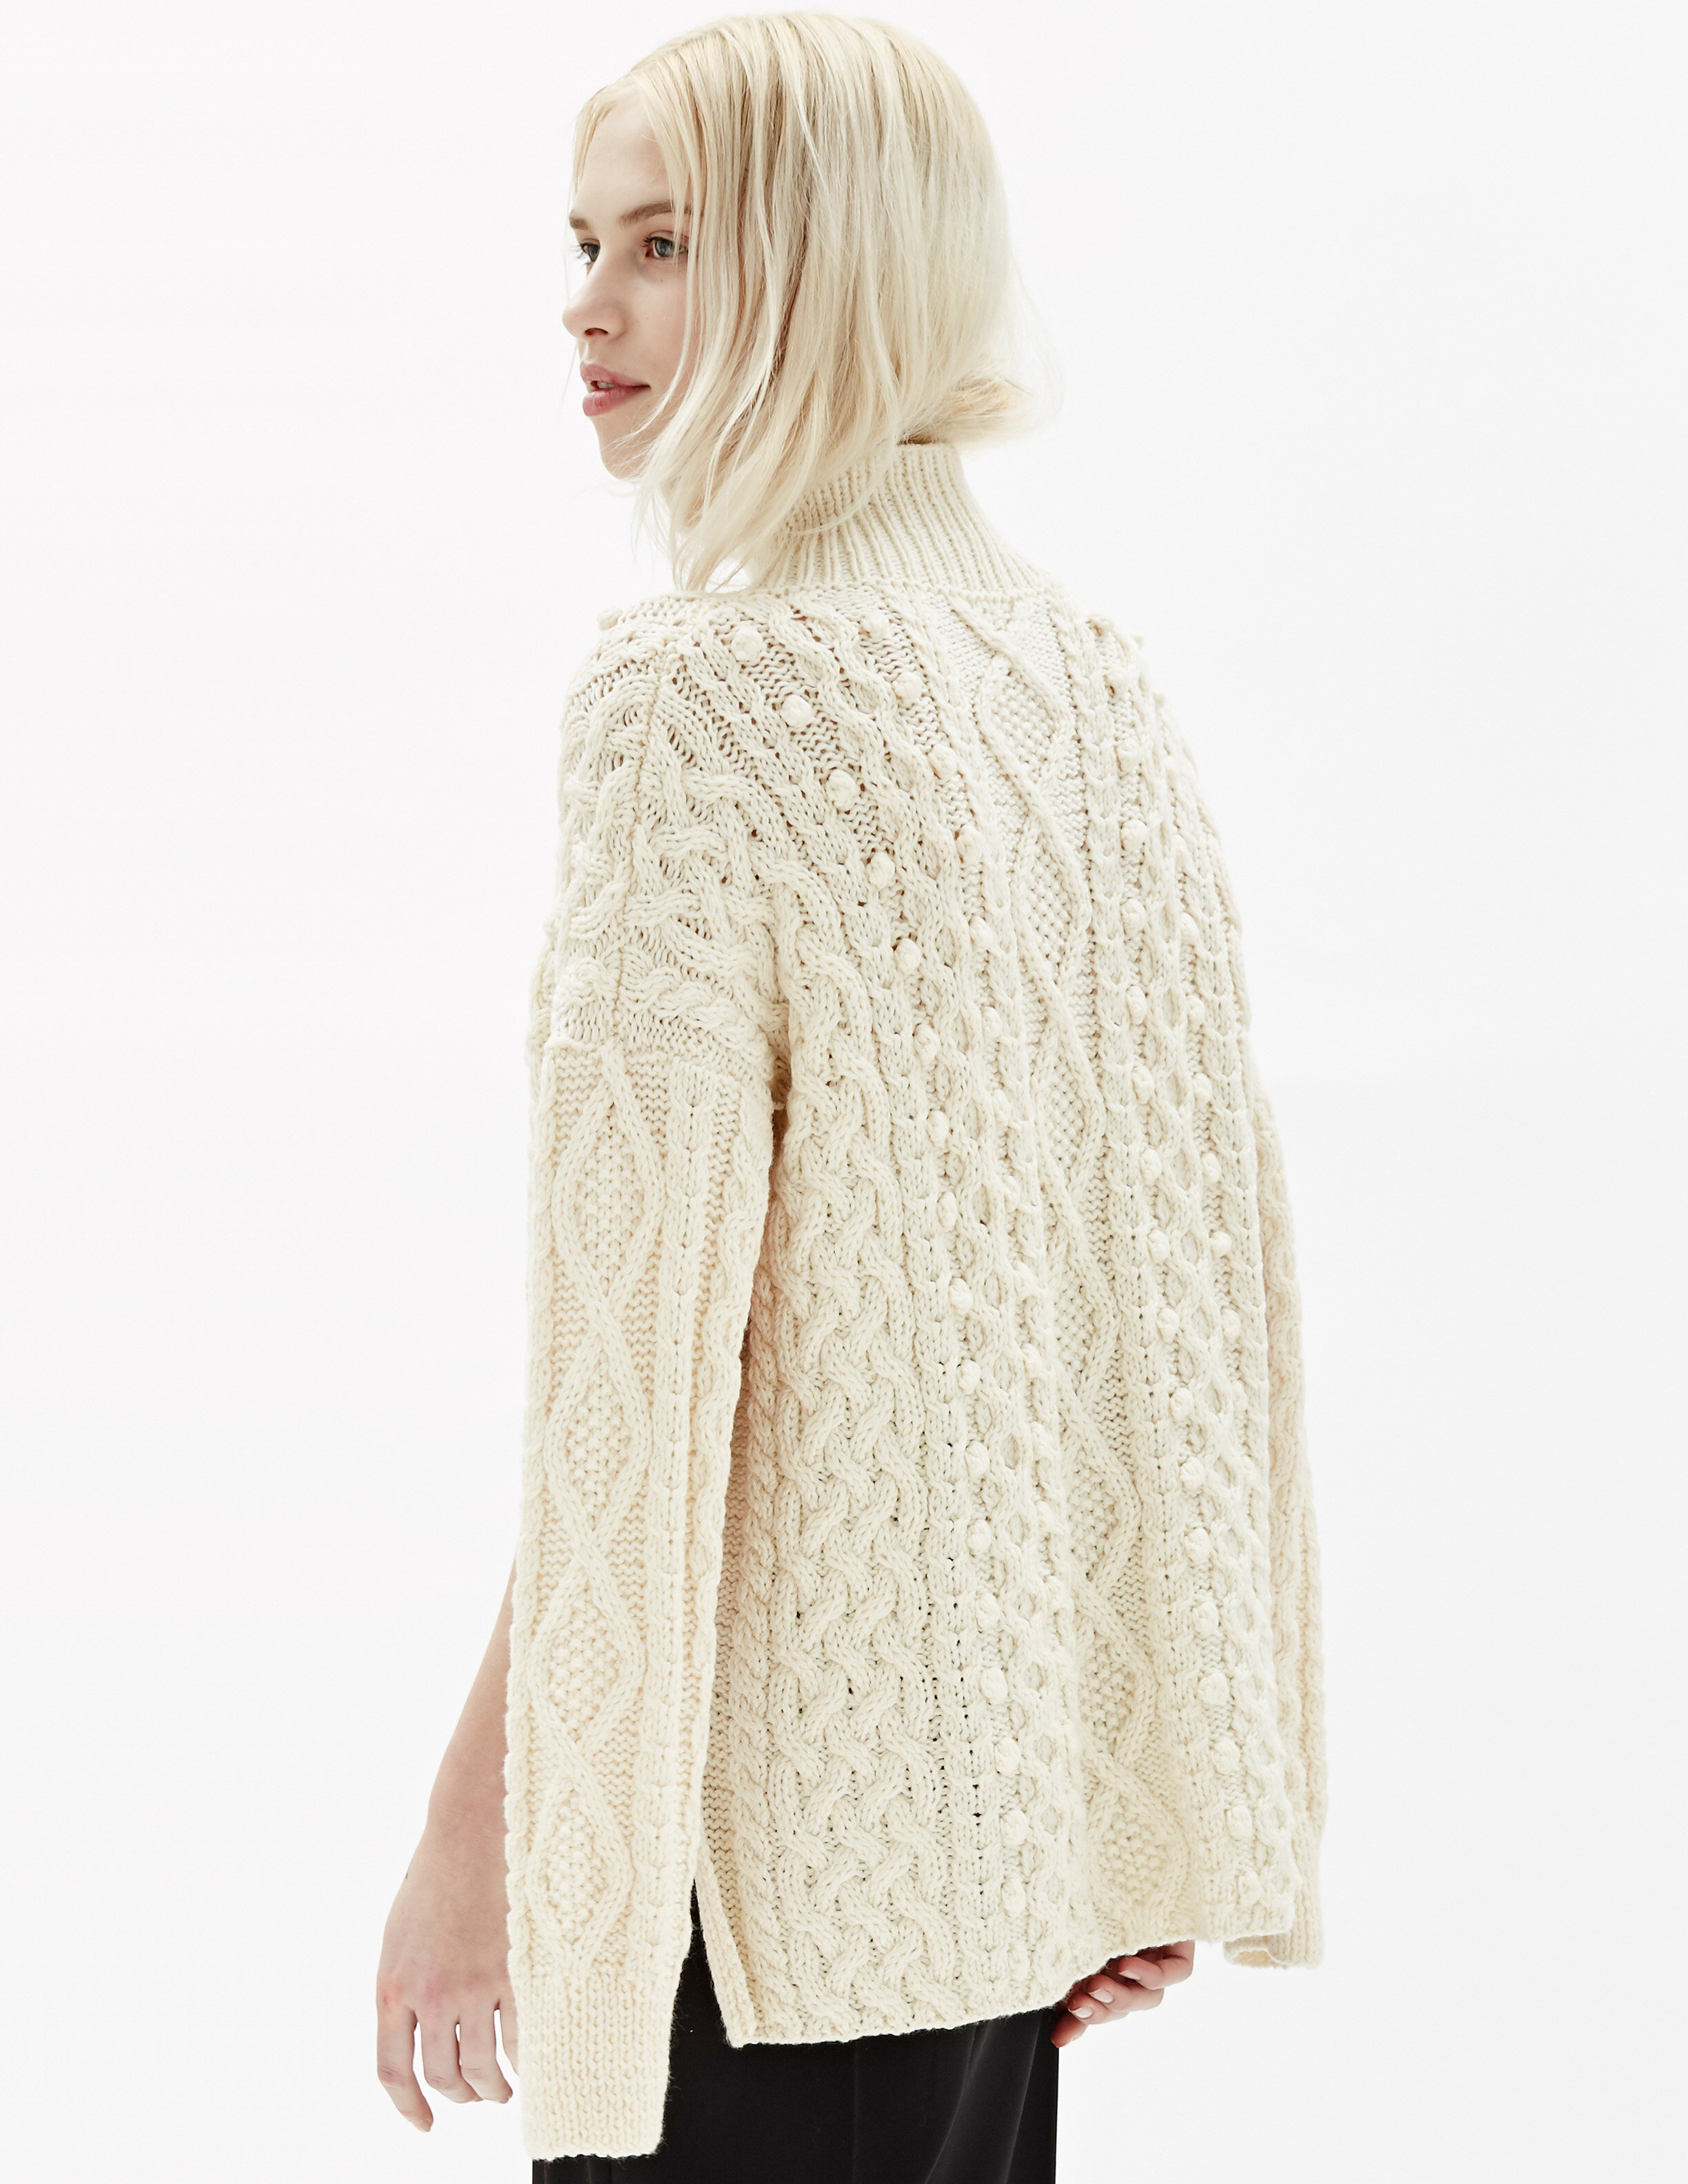 1-cable knit.jpg